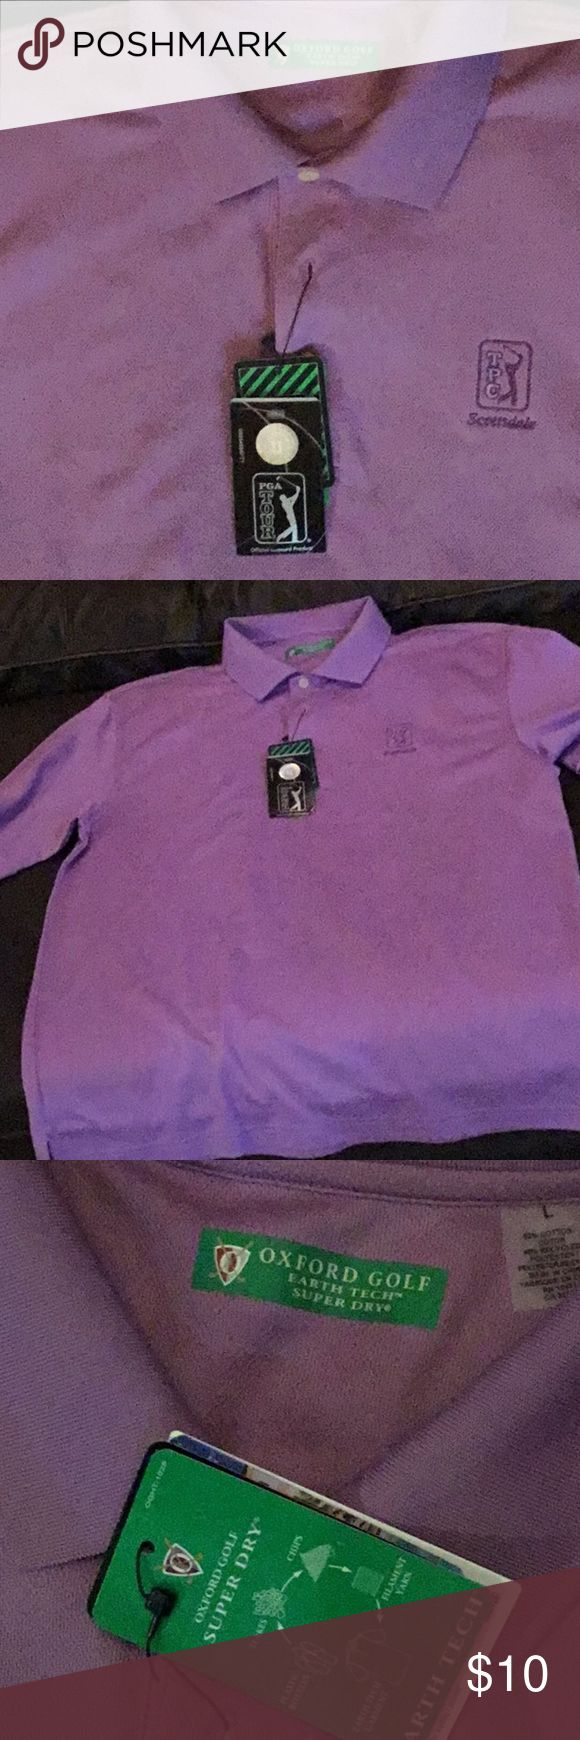 TPC Scottsdale golf shirt Men's sz large never worn. Perfect for the upcoming Waste Management Phoenix open in Feb.  NWT oxford golf Shirts Polos